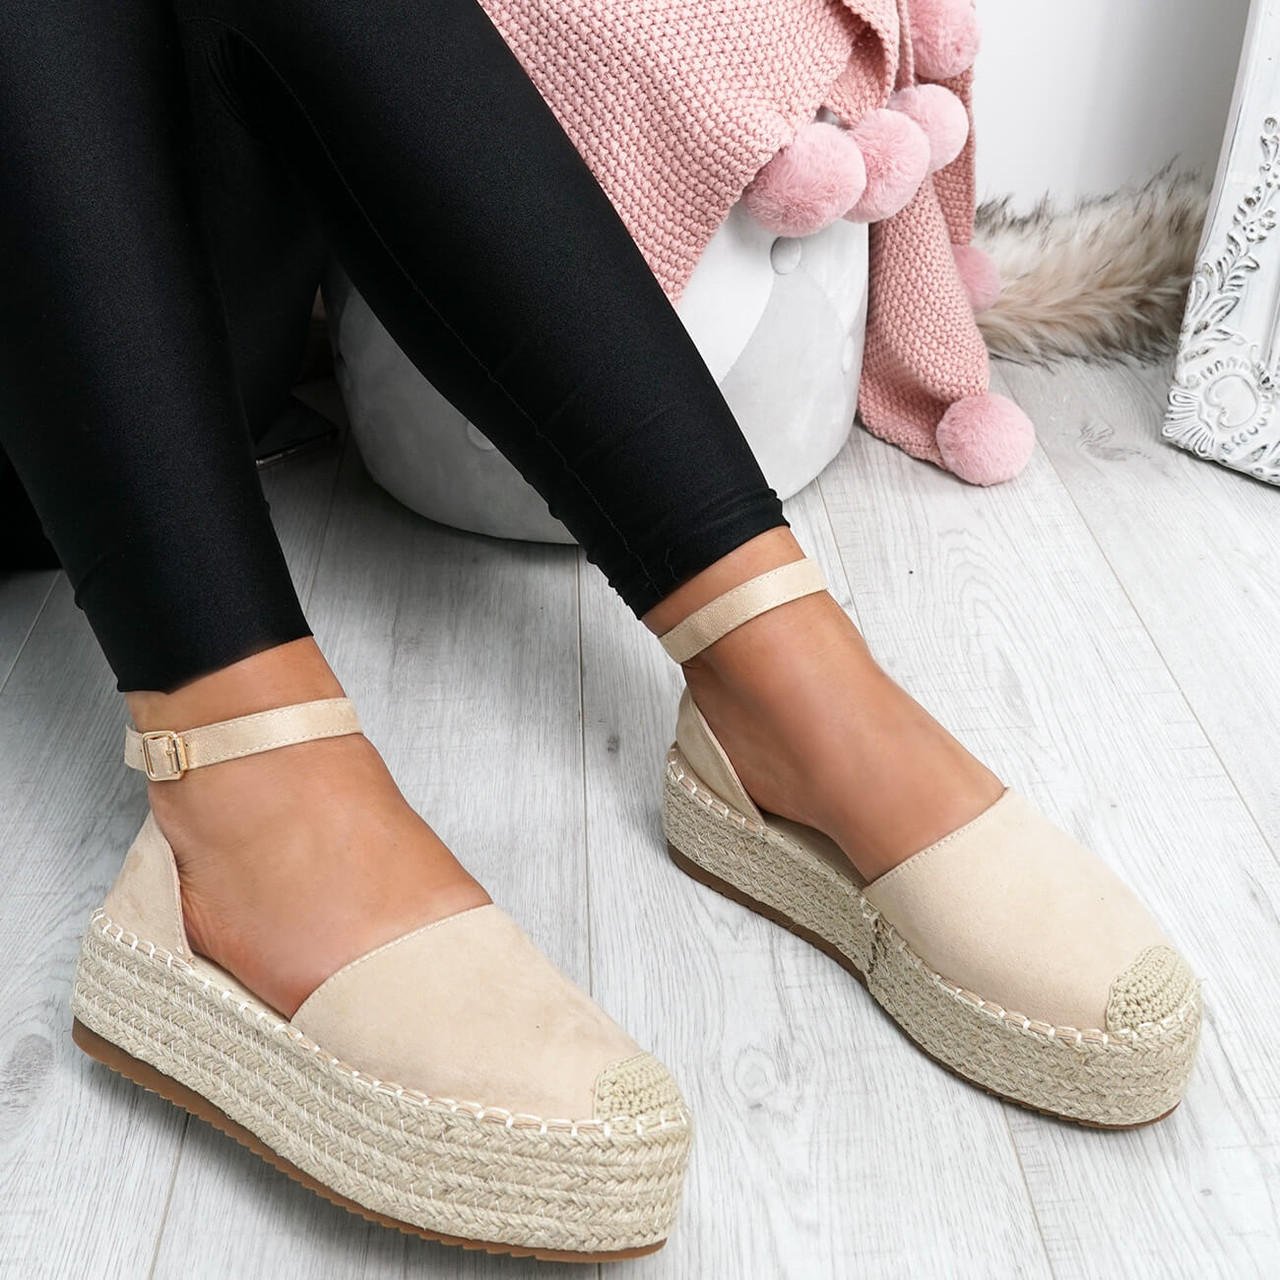 WOMENS LADIES ESPADRILLE SLIP ON BALLERINAS FLATFORM CASUAL SHOES SIZE